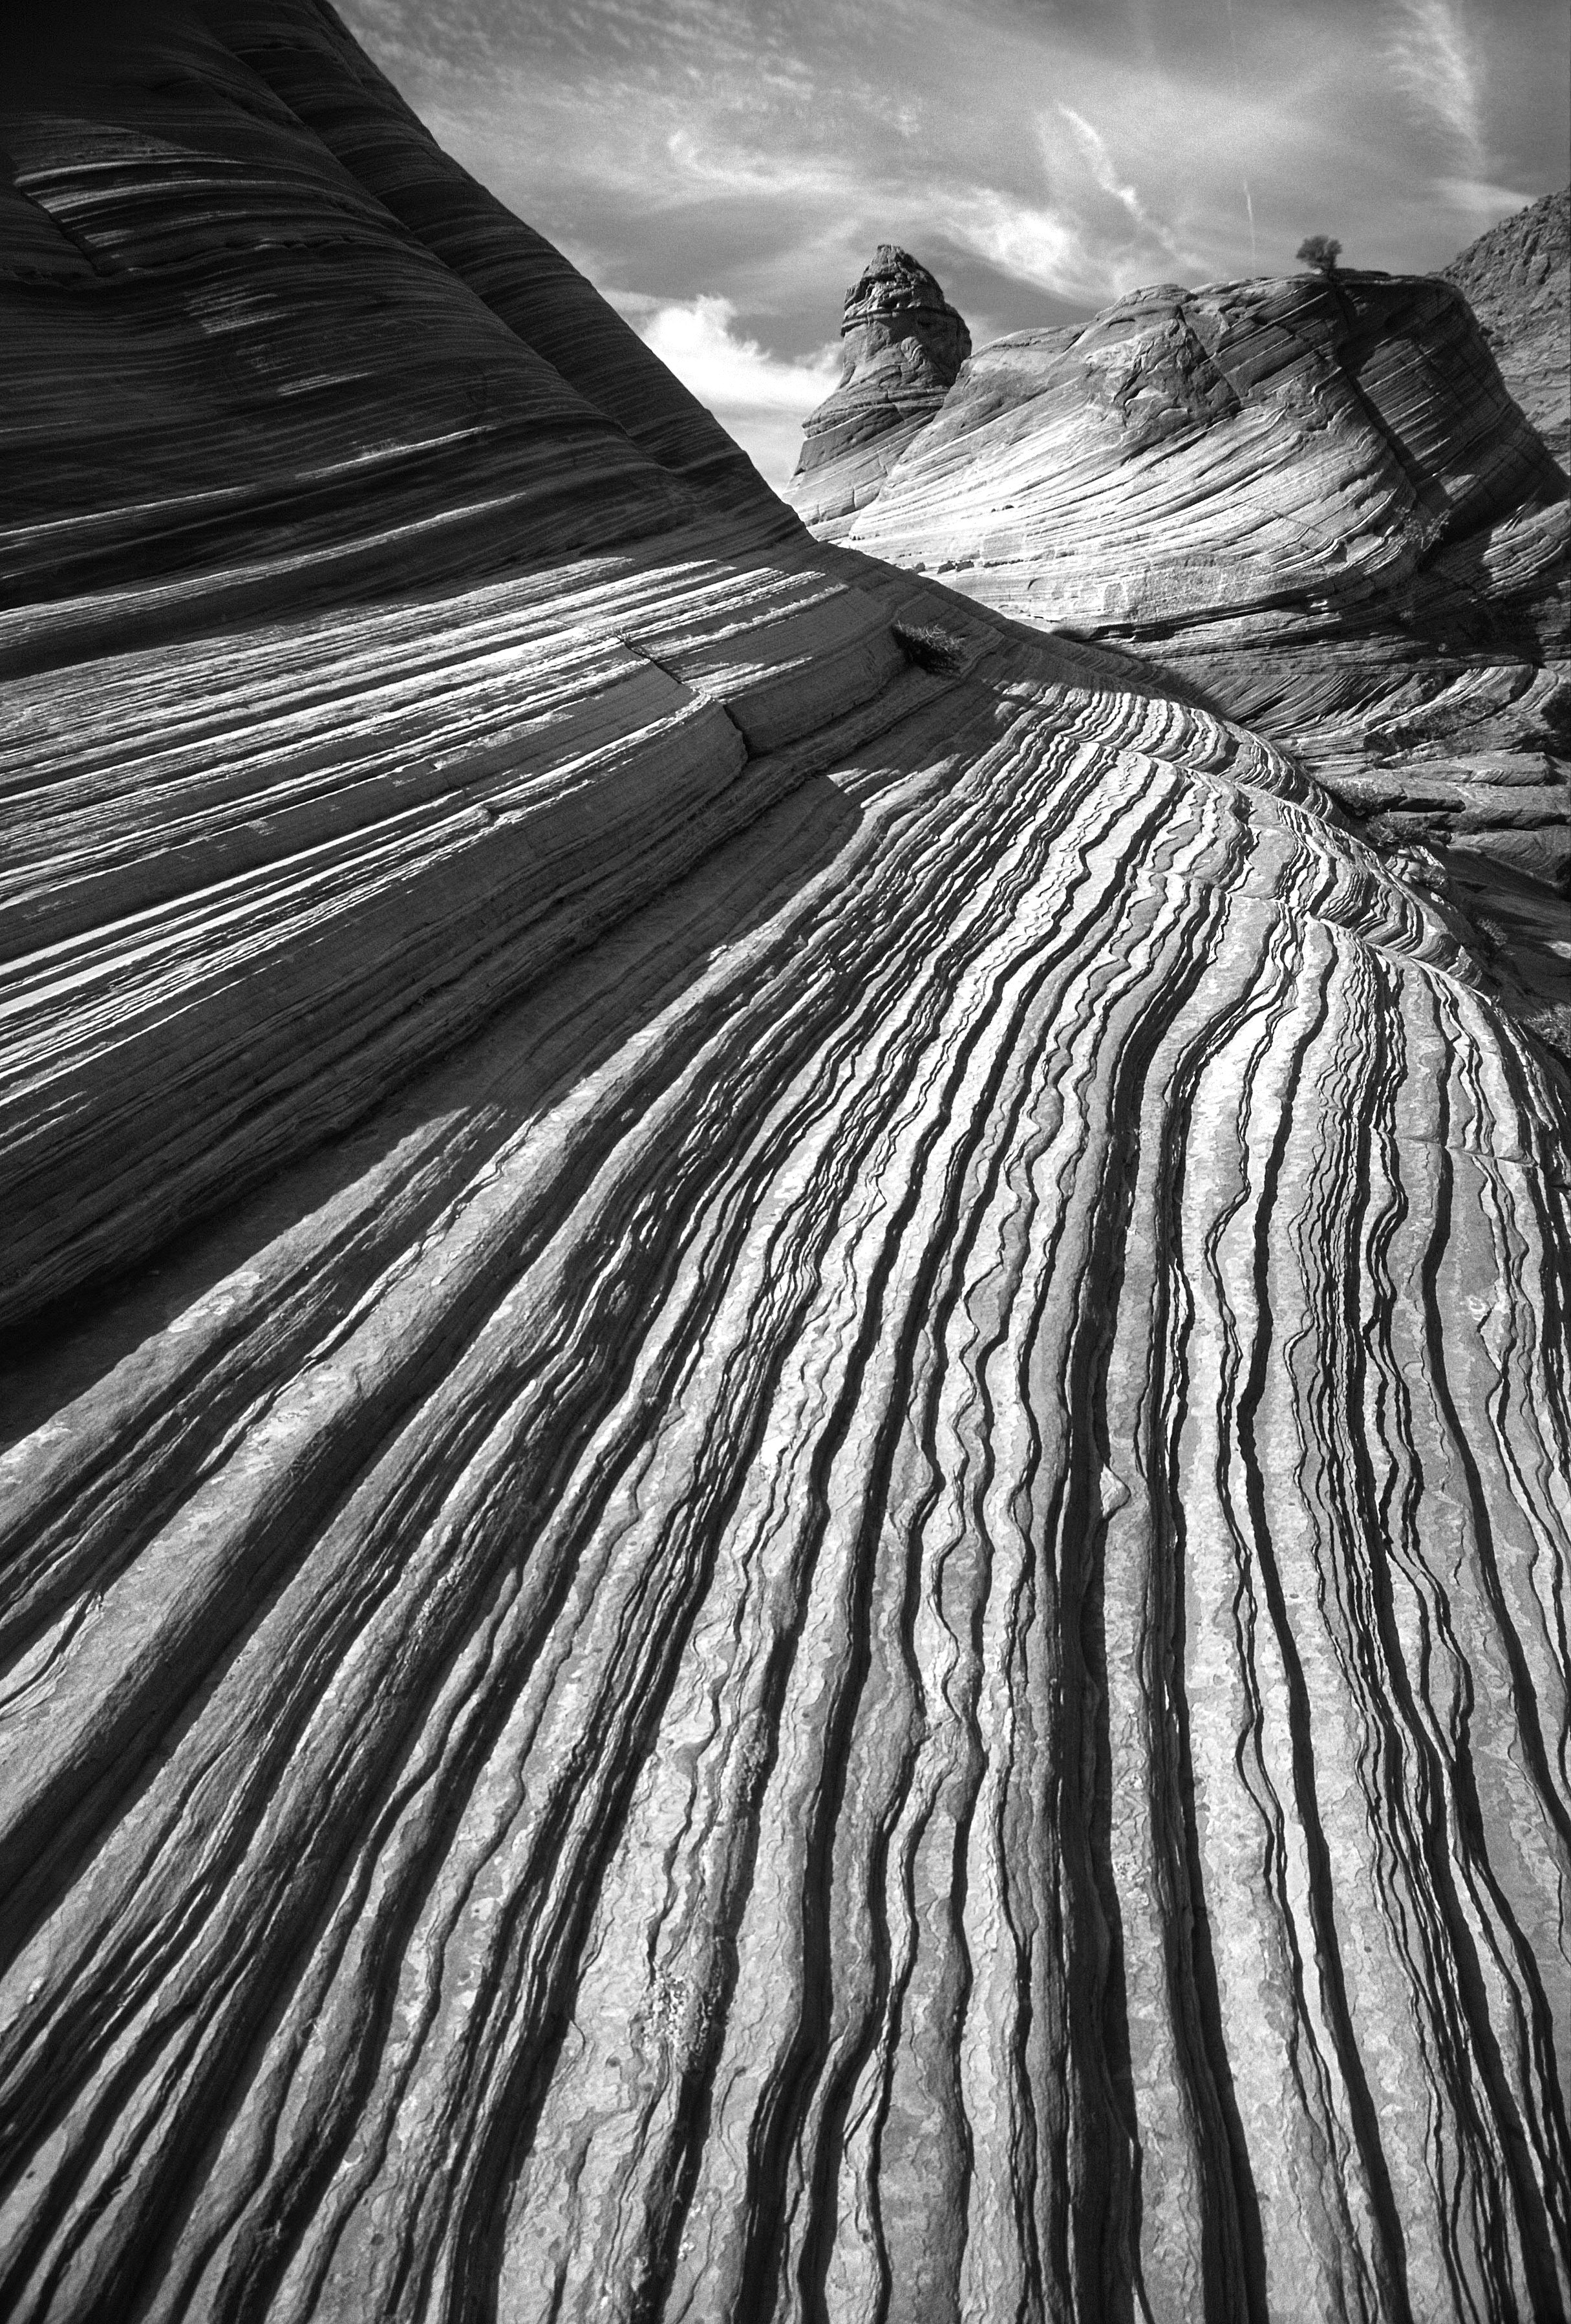 Grayscale Photo of Dessert, Pattern, Rock, Texture, Outdoors, HQ Photo